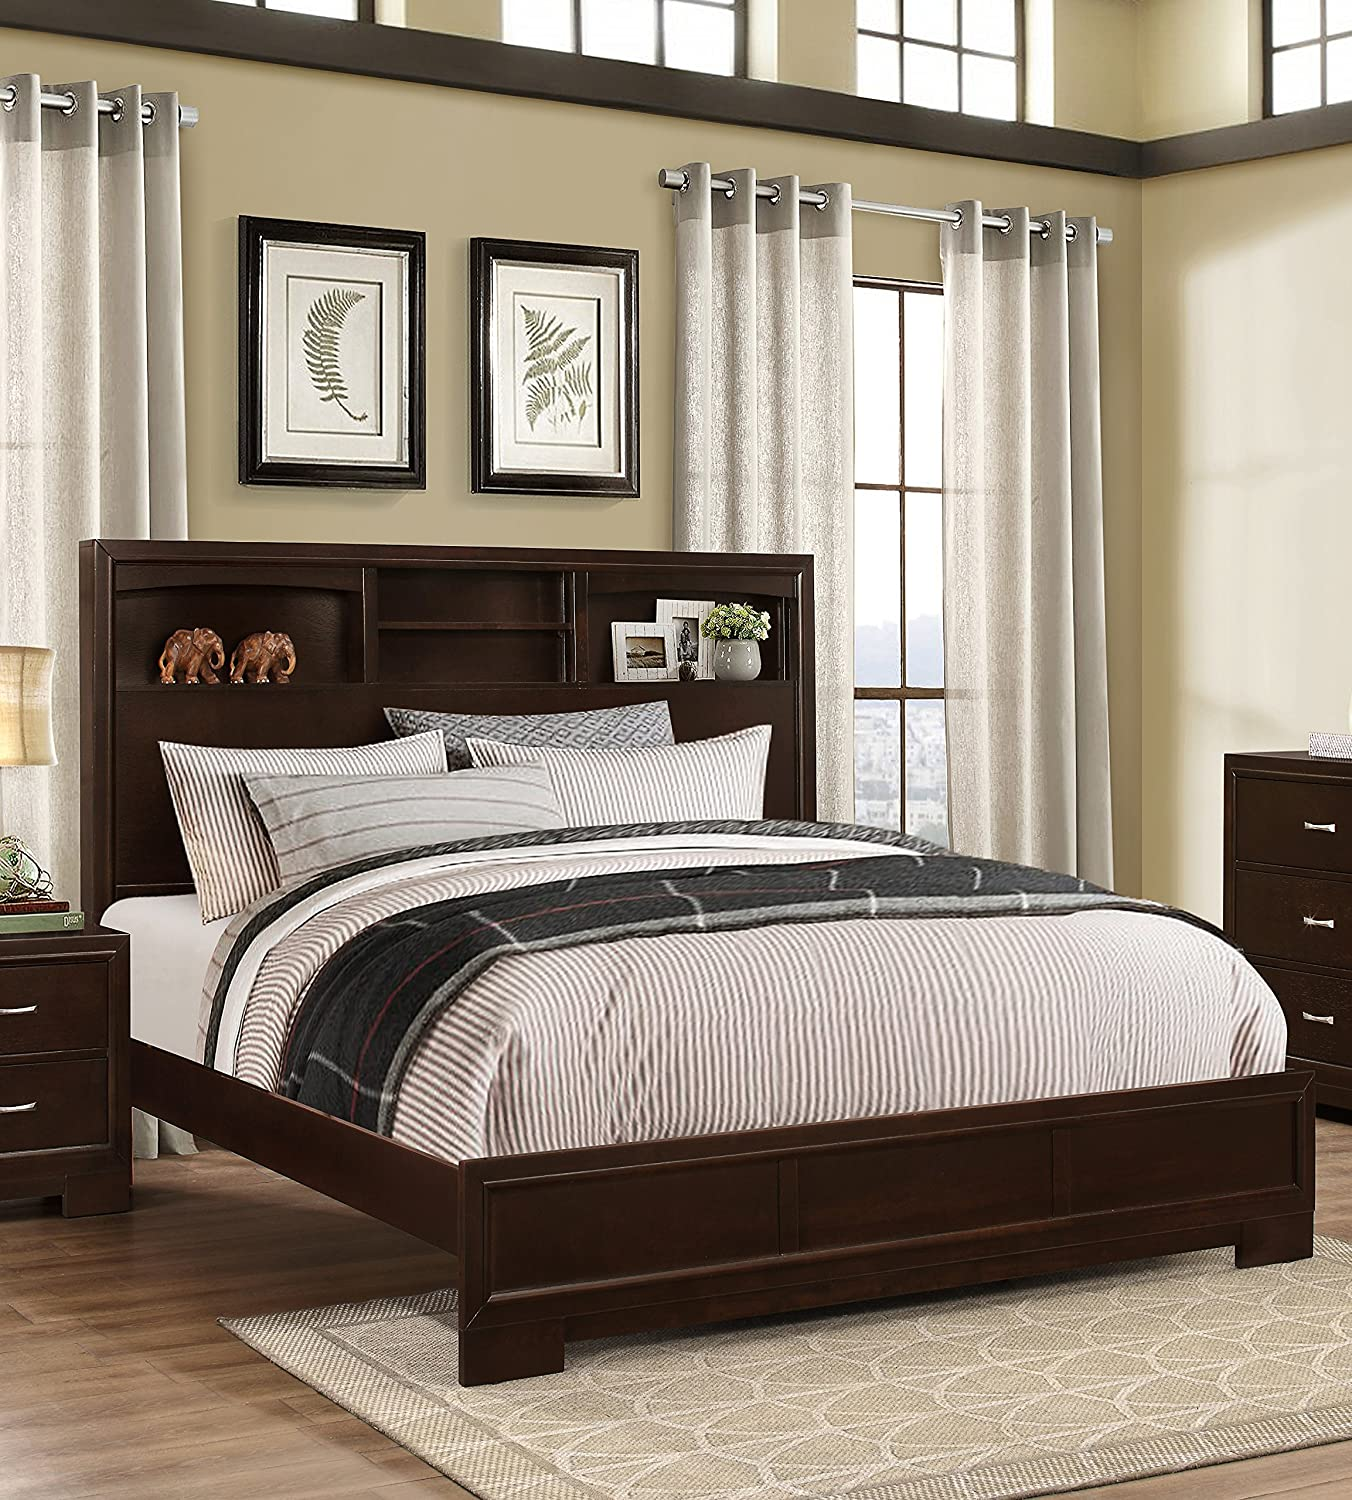 top bedroom furniture. Amazon.com: Roundhill Furniture Montana Modern 5-Piece Wood Bedroom Set With Bed, Dresser, Mirror, Nightstand, Chest, Queen, Walnut: Kitchen \u0026 Dining Top